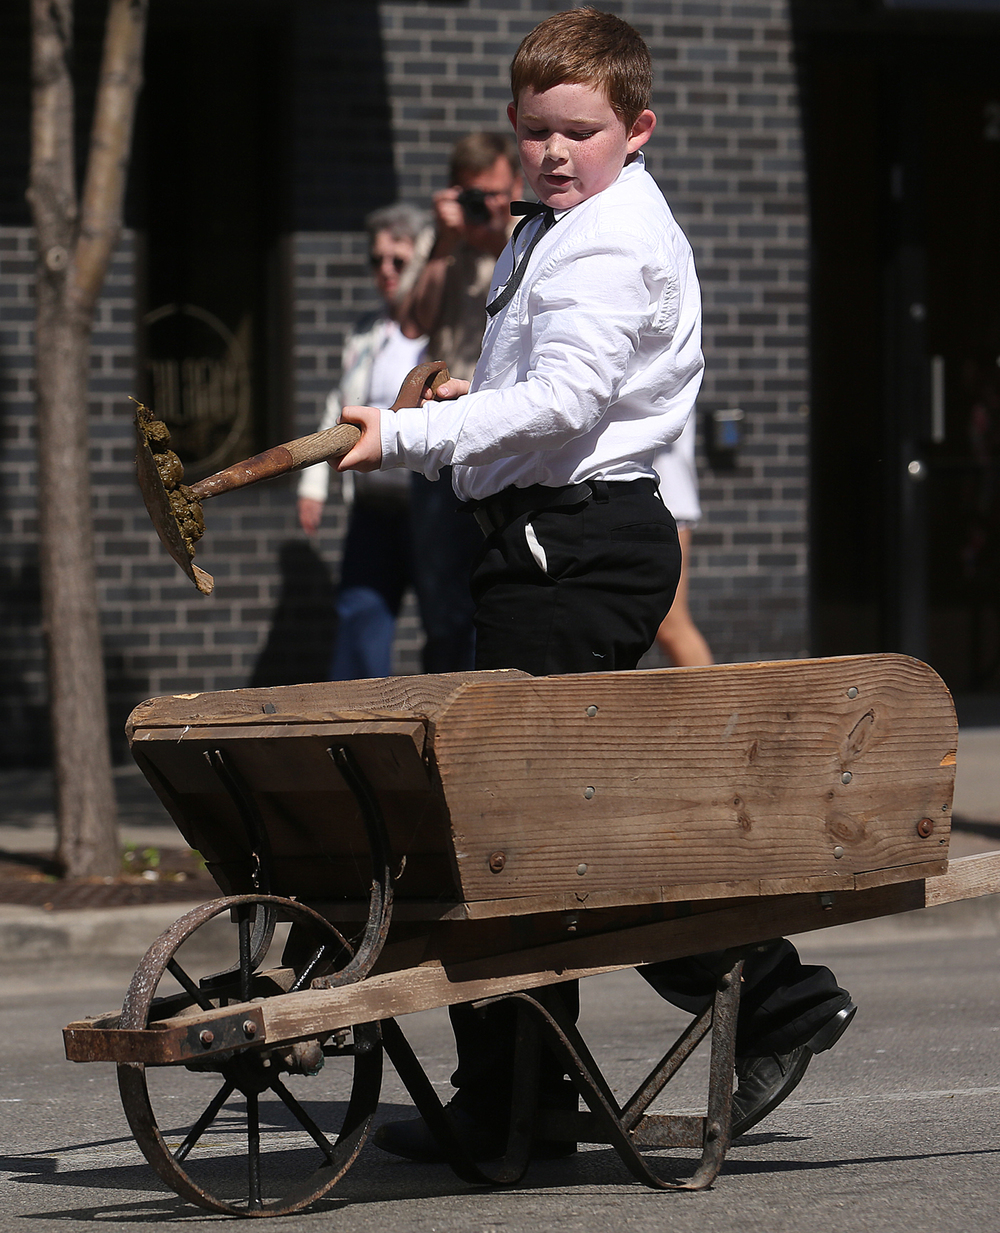 One of the important jobs during the funeral procession was capably handled by this young boy who scooped manure left by the horses during the parade. David Spencer/The State Journal-Register